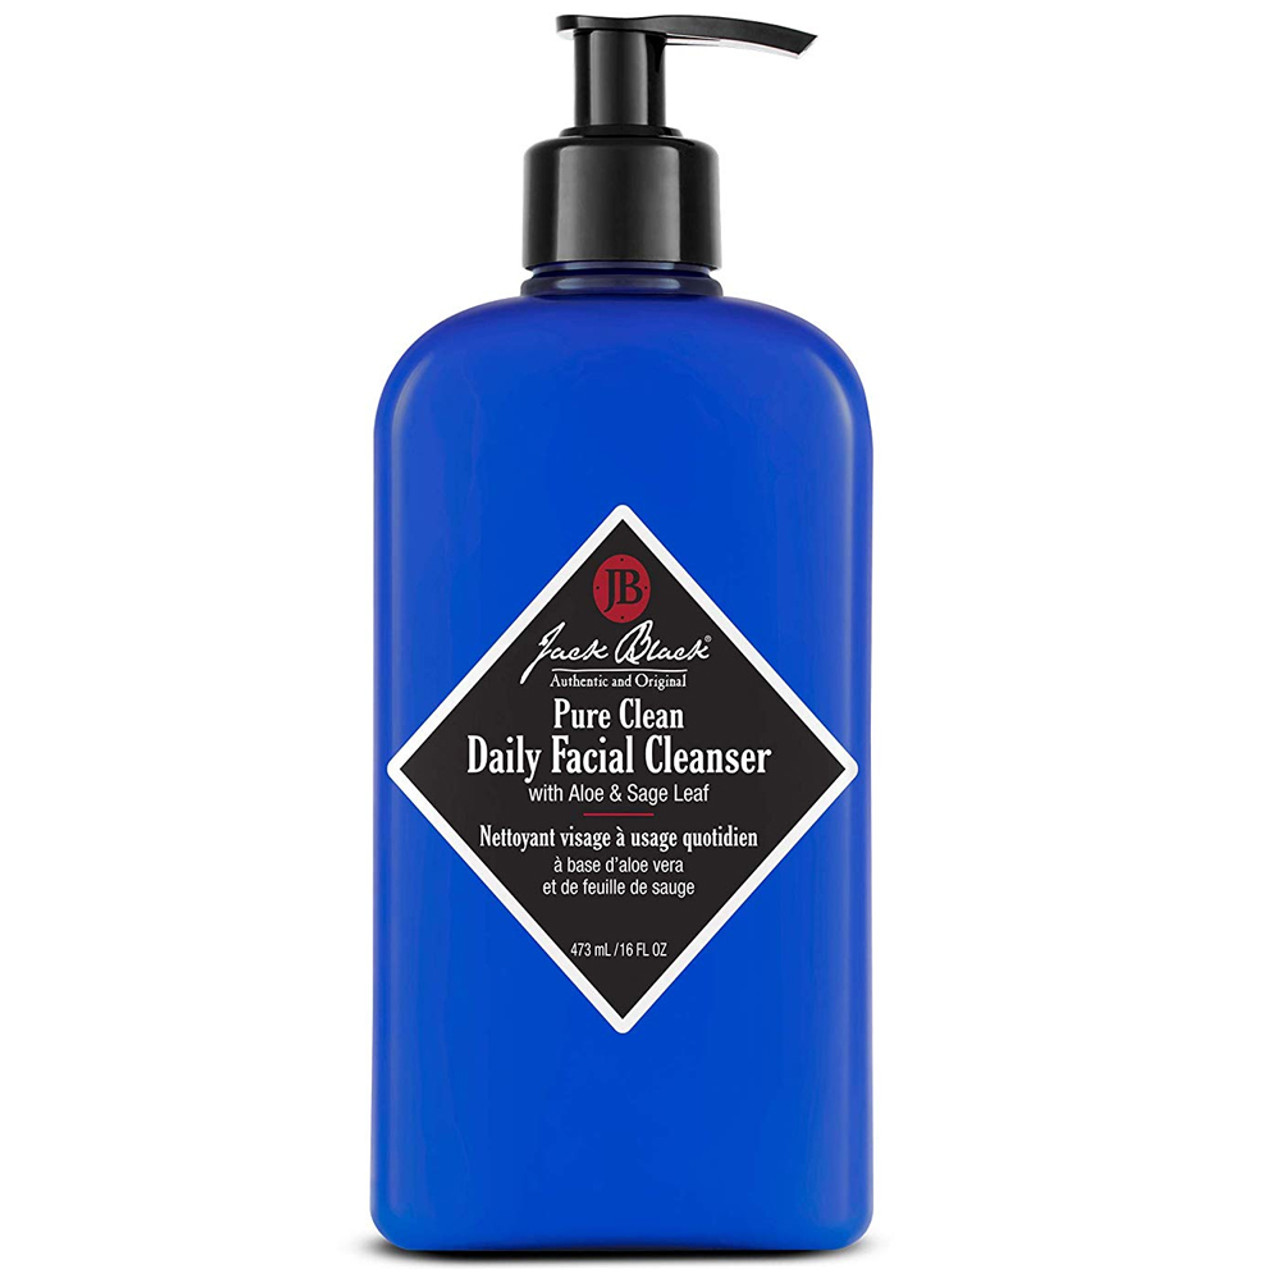 Jack Black Pure Clean Daily Facial Cleanser 6.0 oz